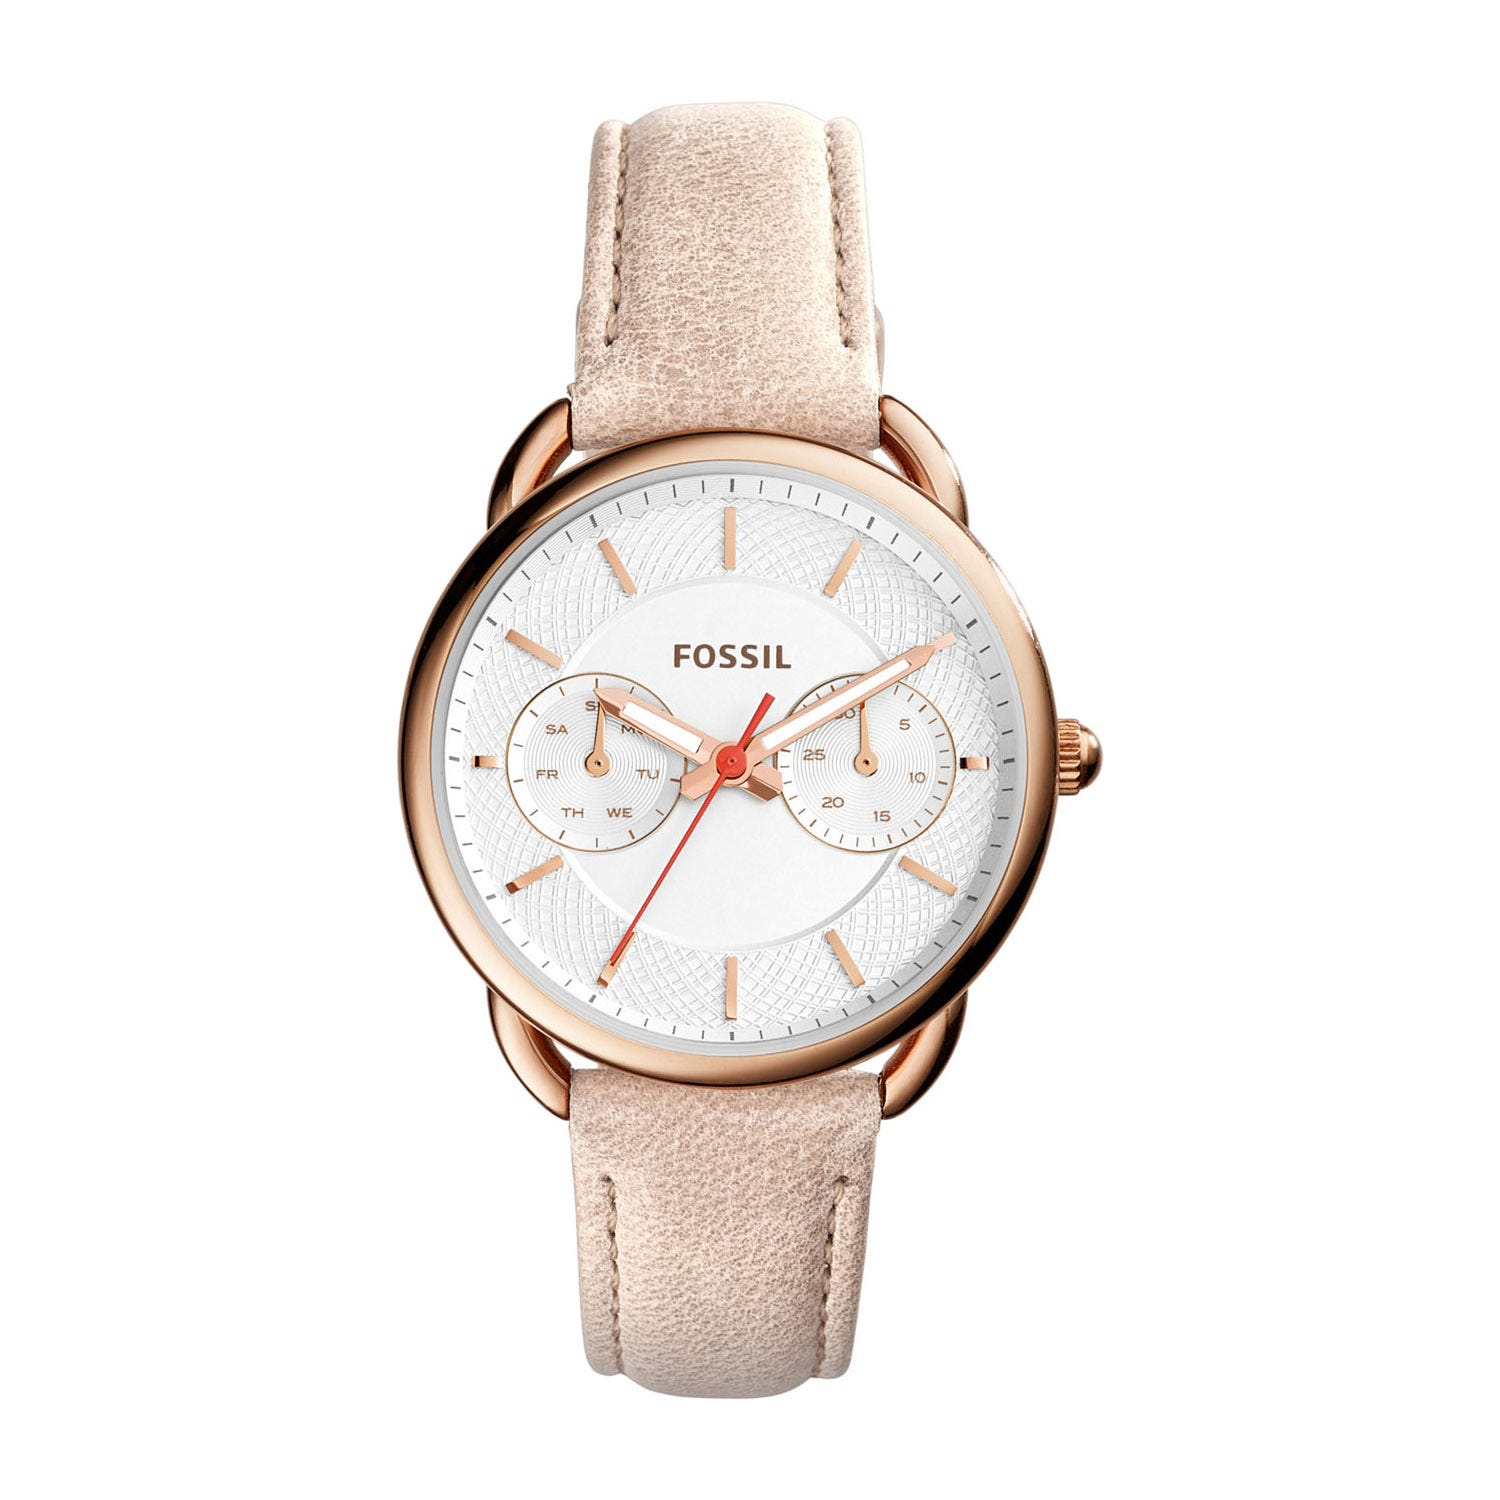 Fossil Tailor ladies' light brown leather strap watch